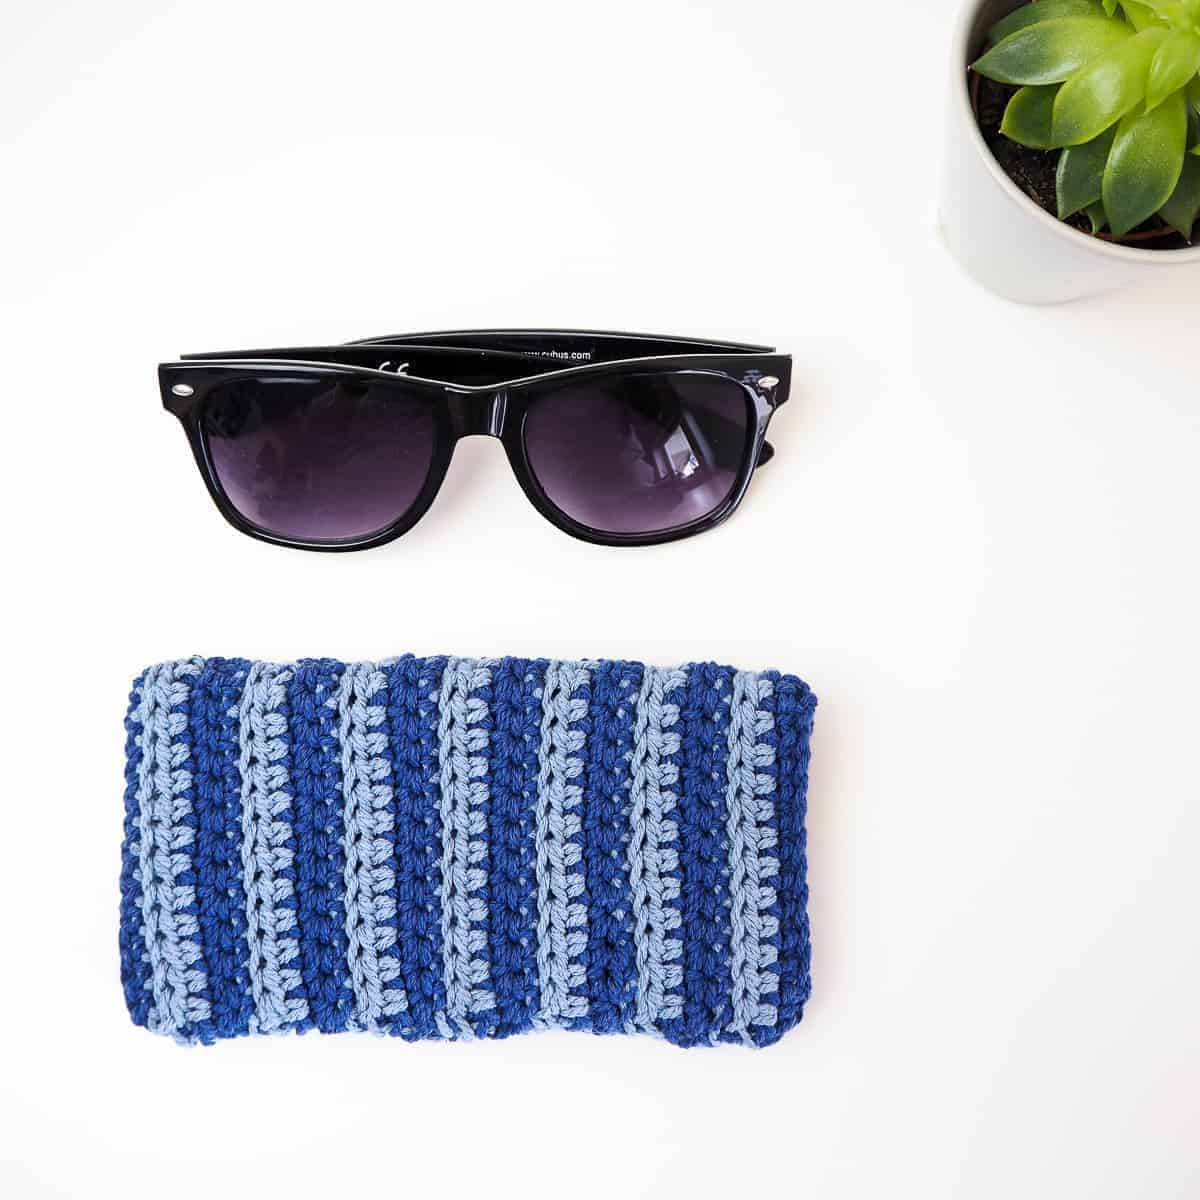 Striped Sunglasses Pouch by Joy of Motion Crochet